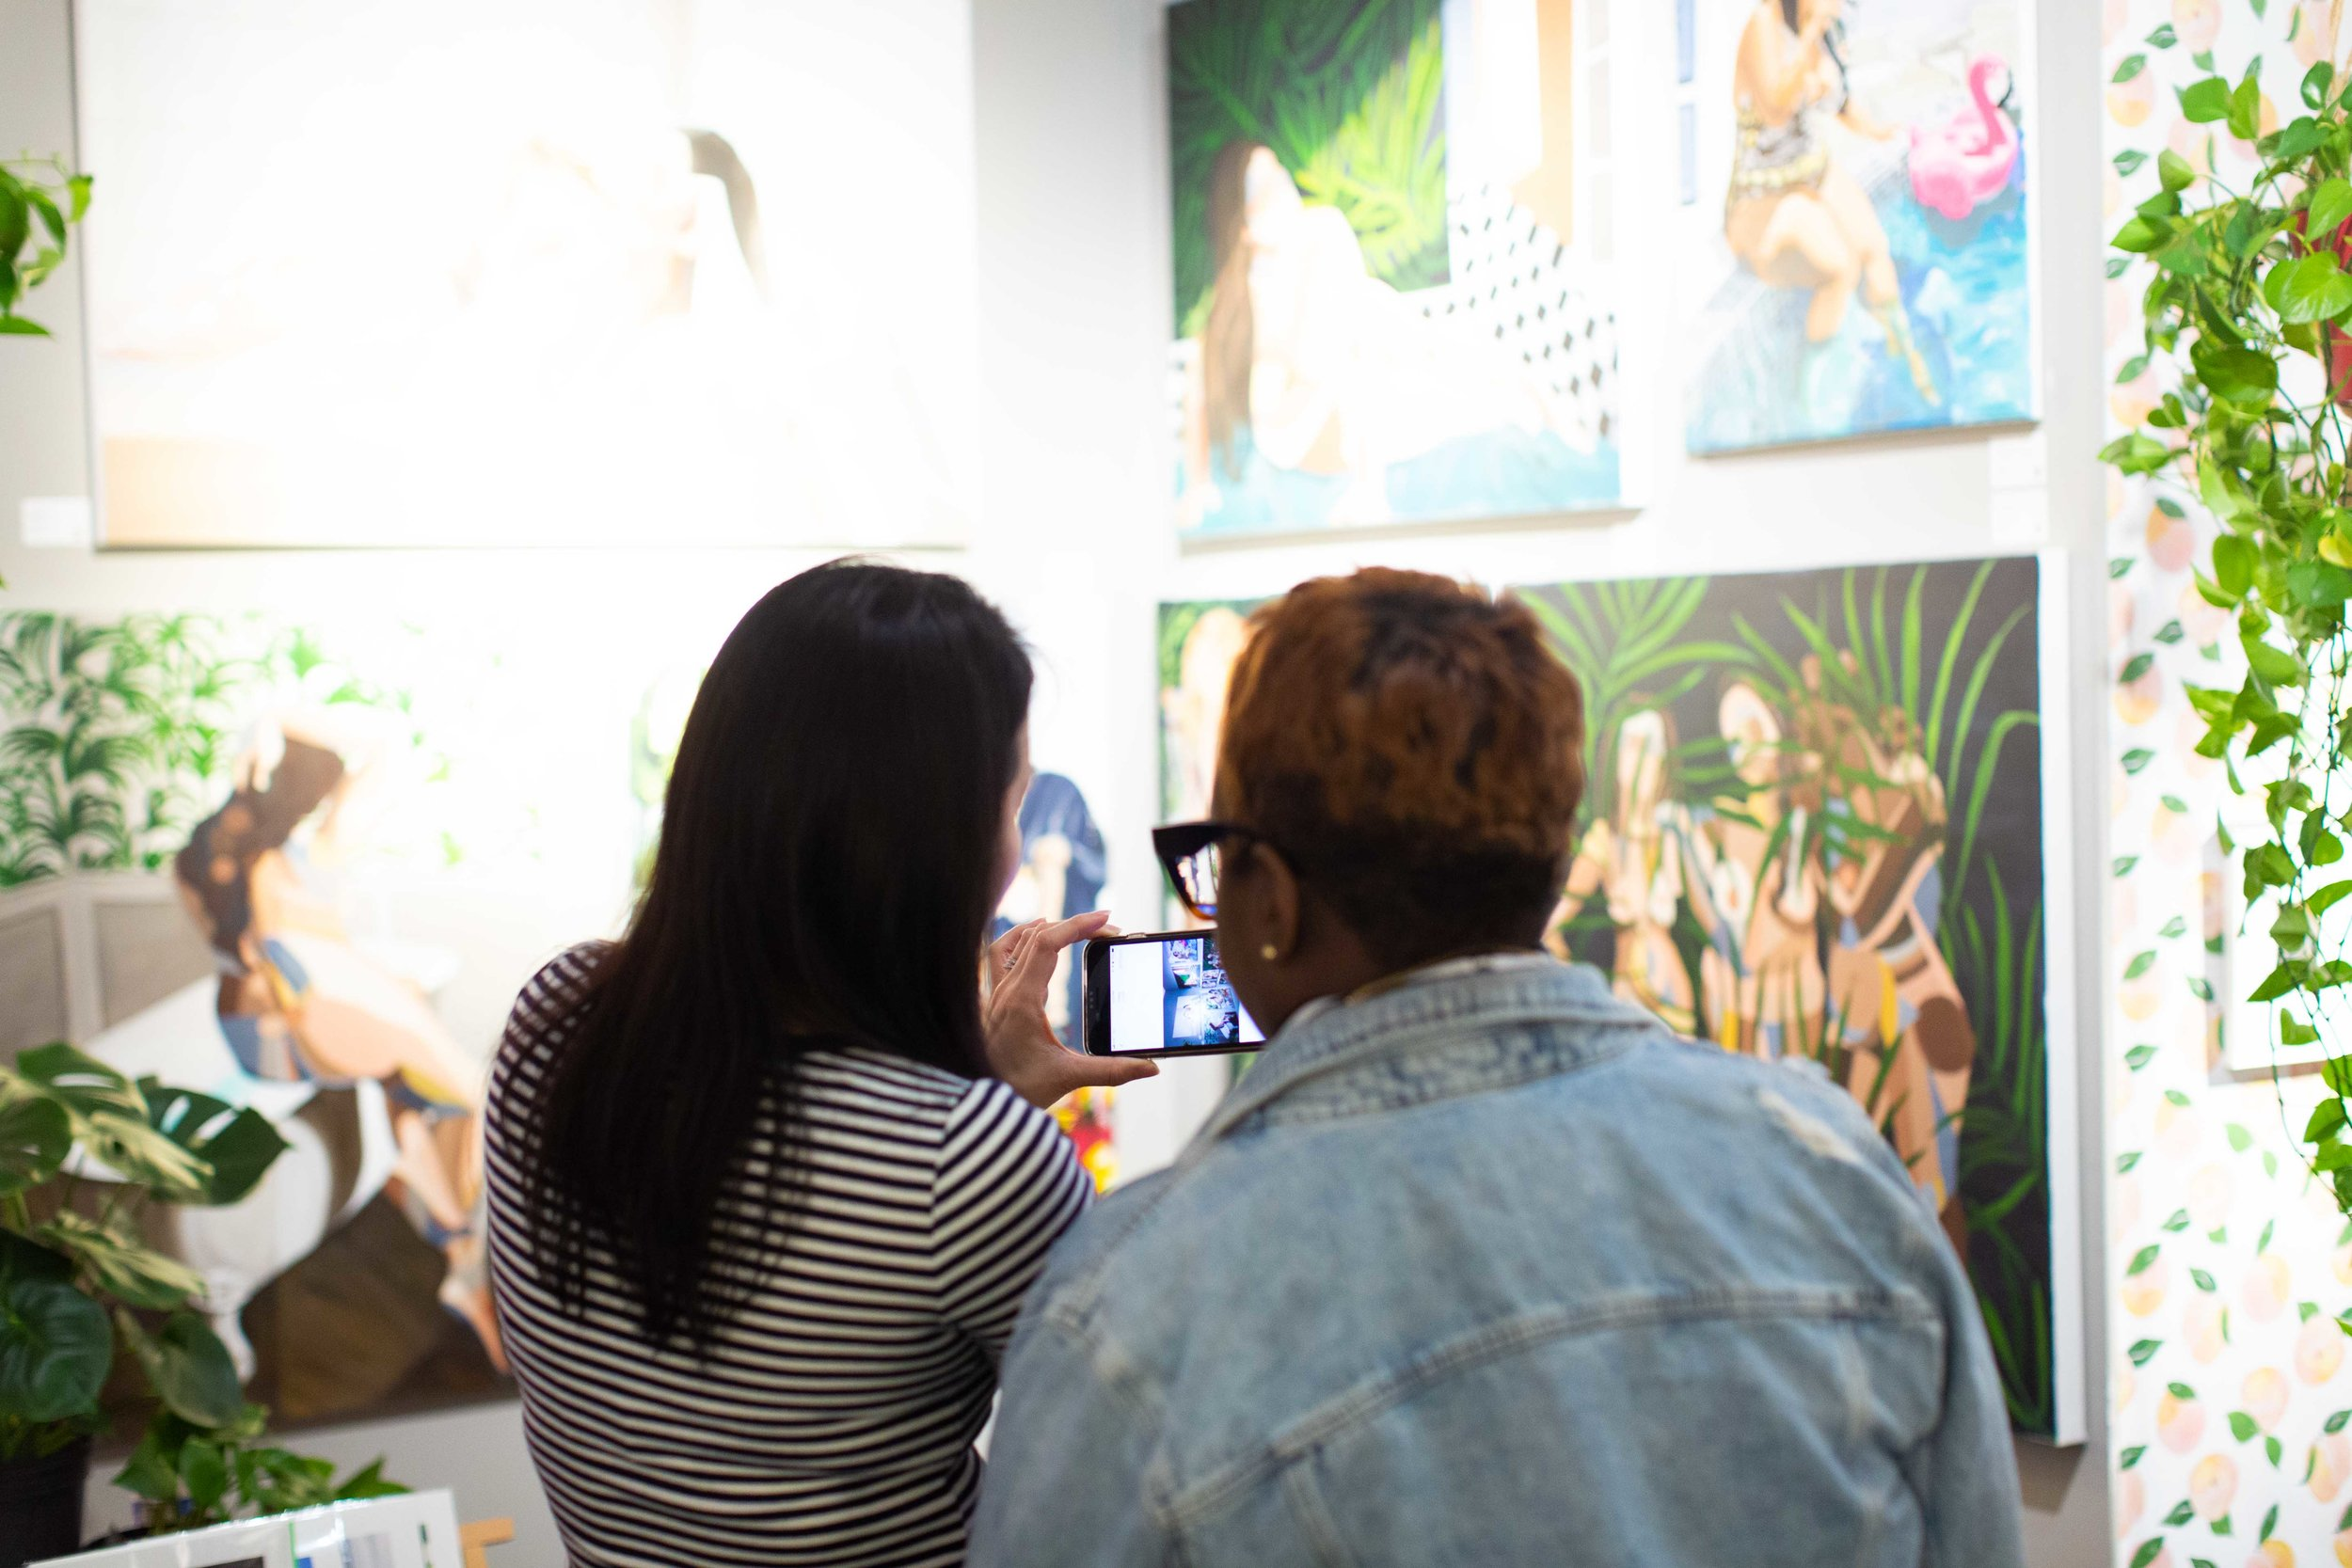 Viewers capture Valenti's work at Superfine! Photo by James Miille